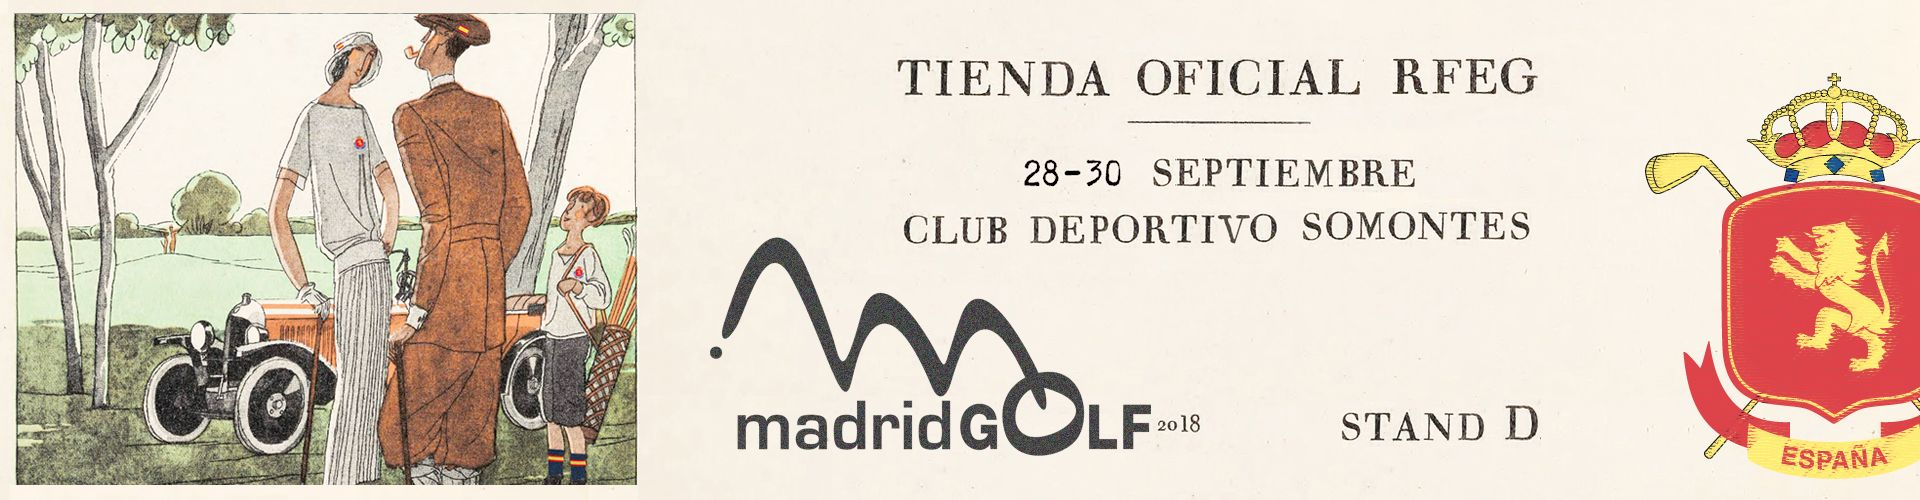 MadridGolf